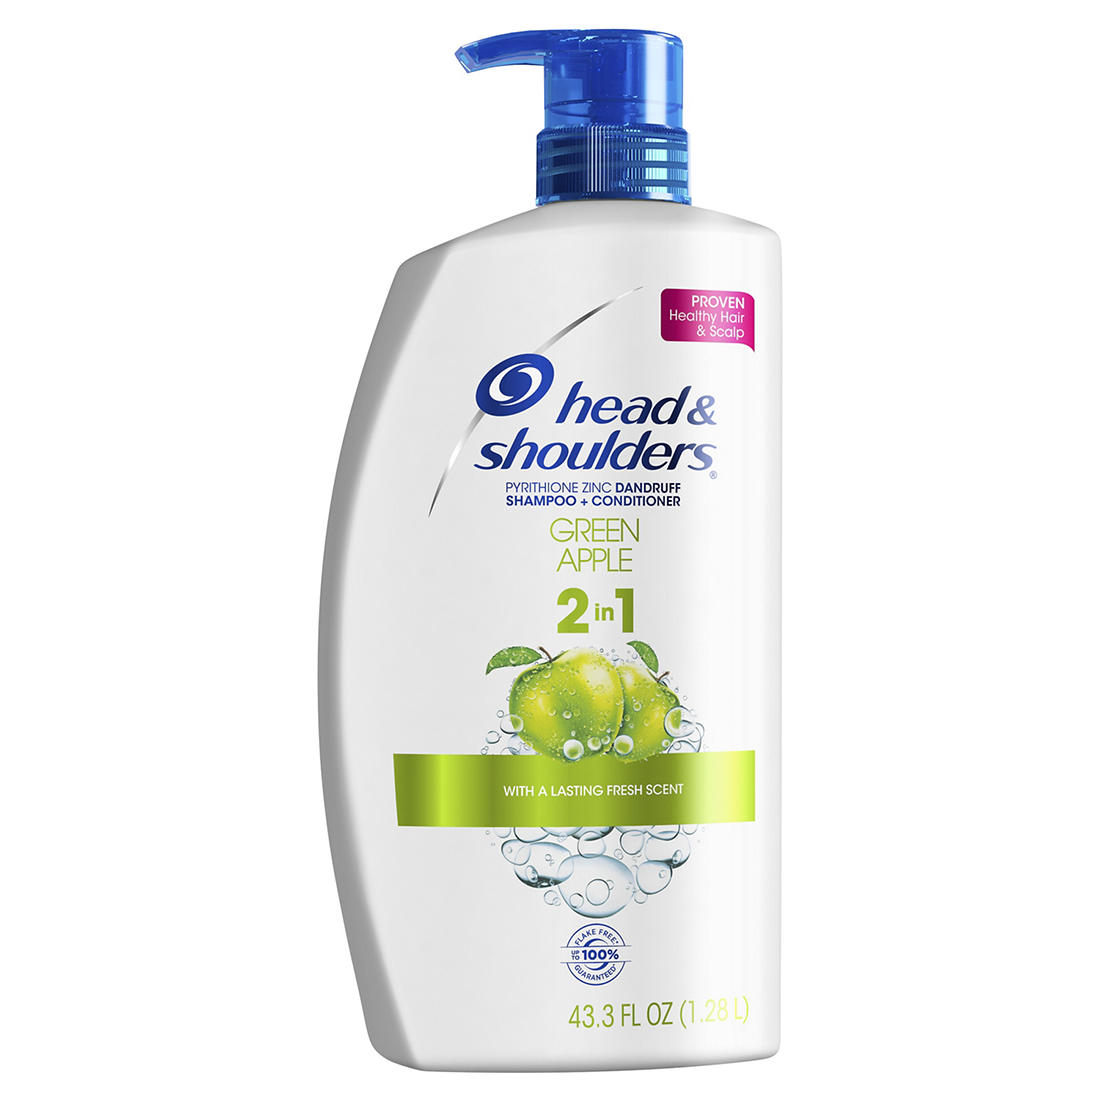 6bad204adcd4 Head and Shoulders Green Apple Anti-Dandruff 2 in 1 Shampoo and  Conditioner, 43.3 fl. oz.